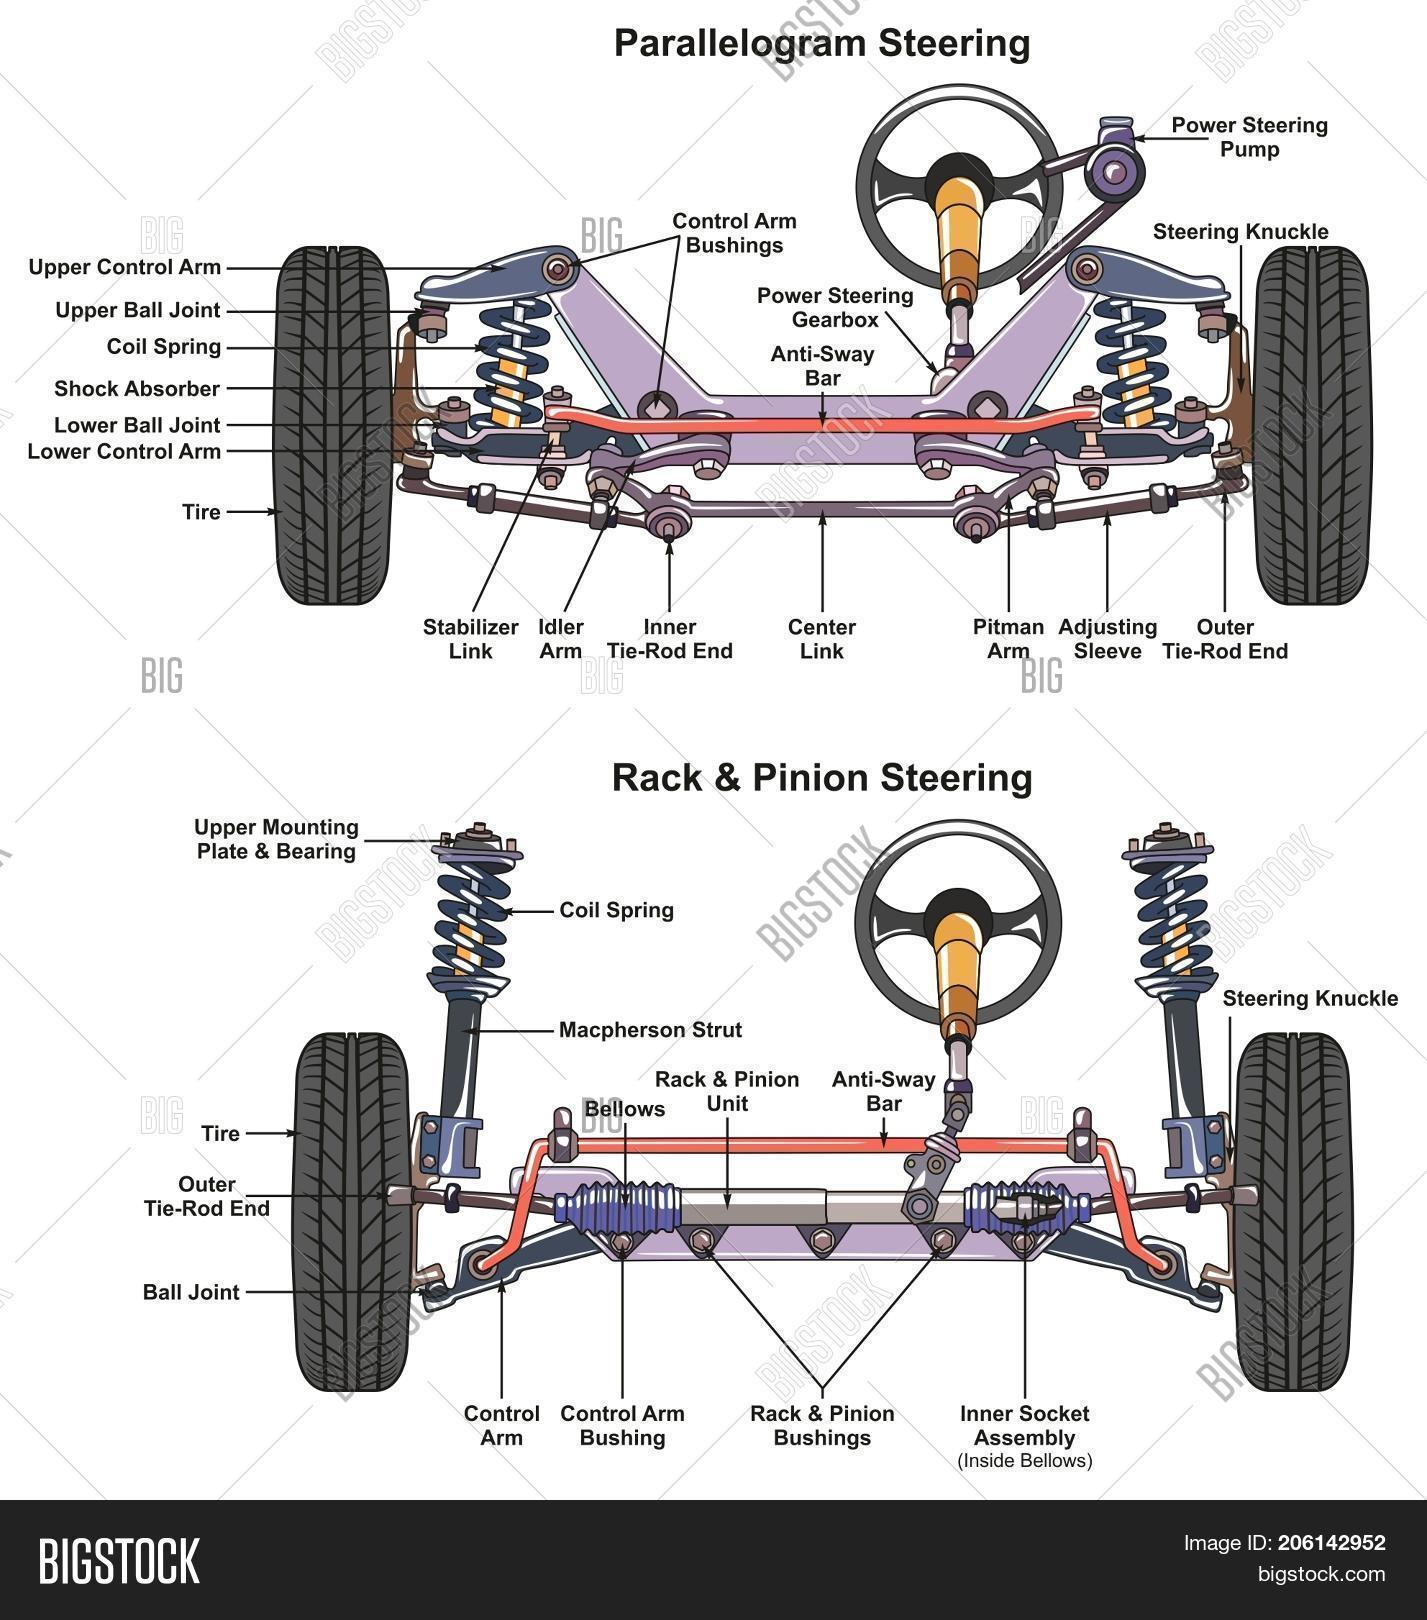 Automotive Steering System Image & Photo | Bigstock